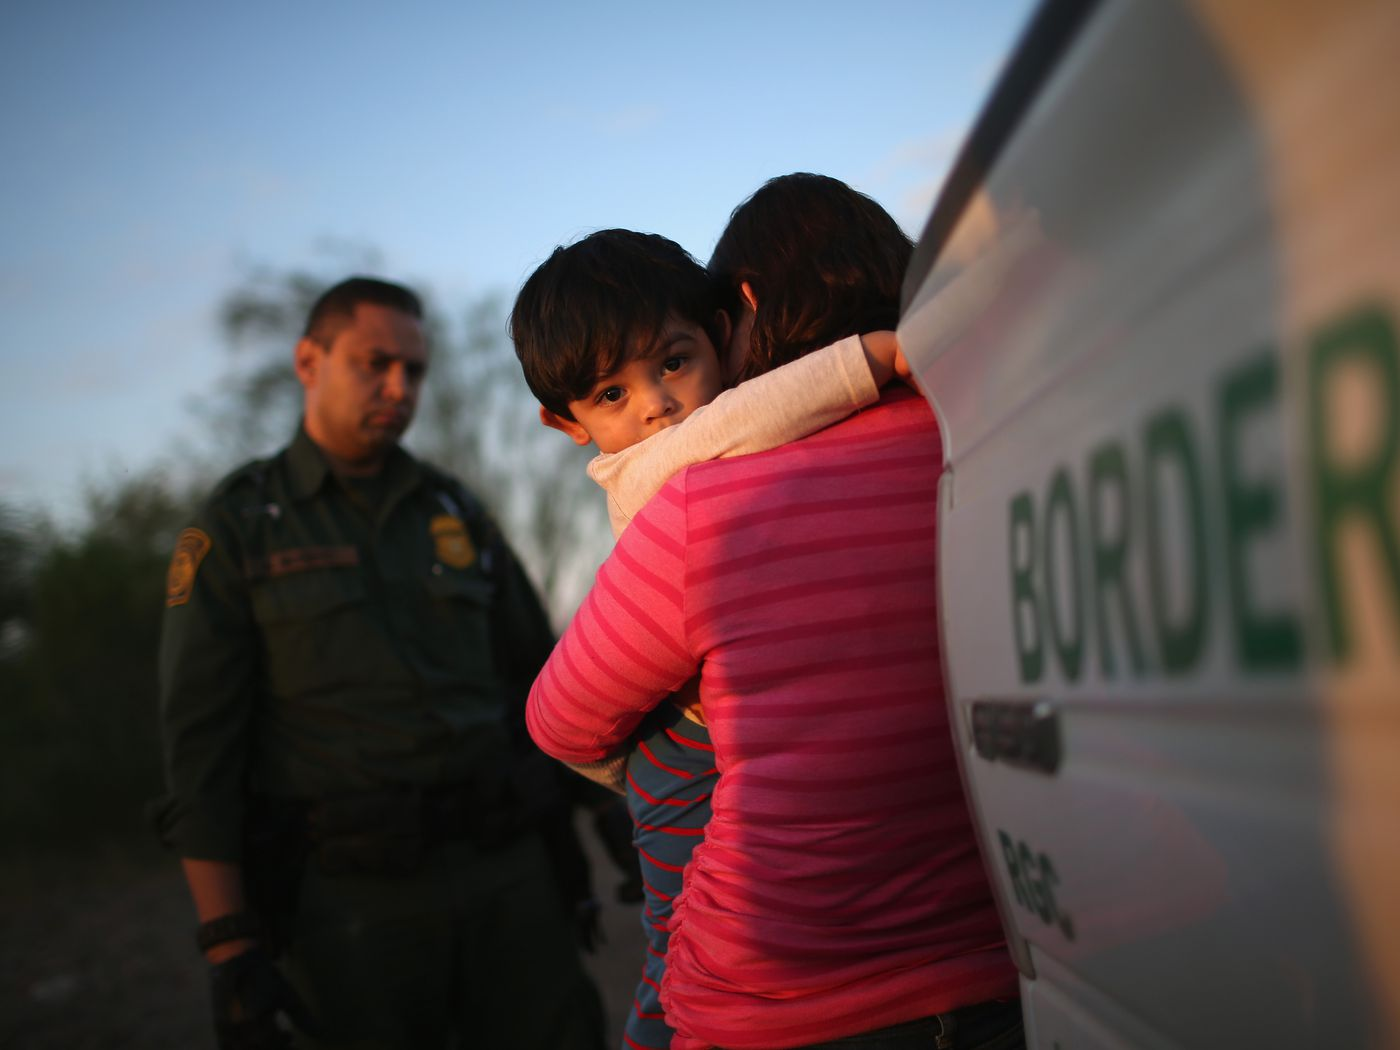 Immigration Trumps Dhs Is Separating Families Based On Bad Flexus Gesture Control Sleeve Statistics Vox